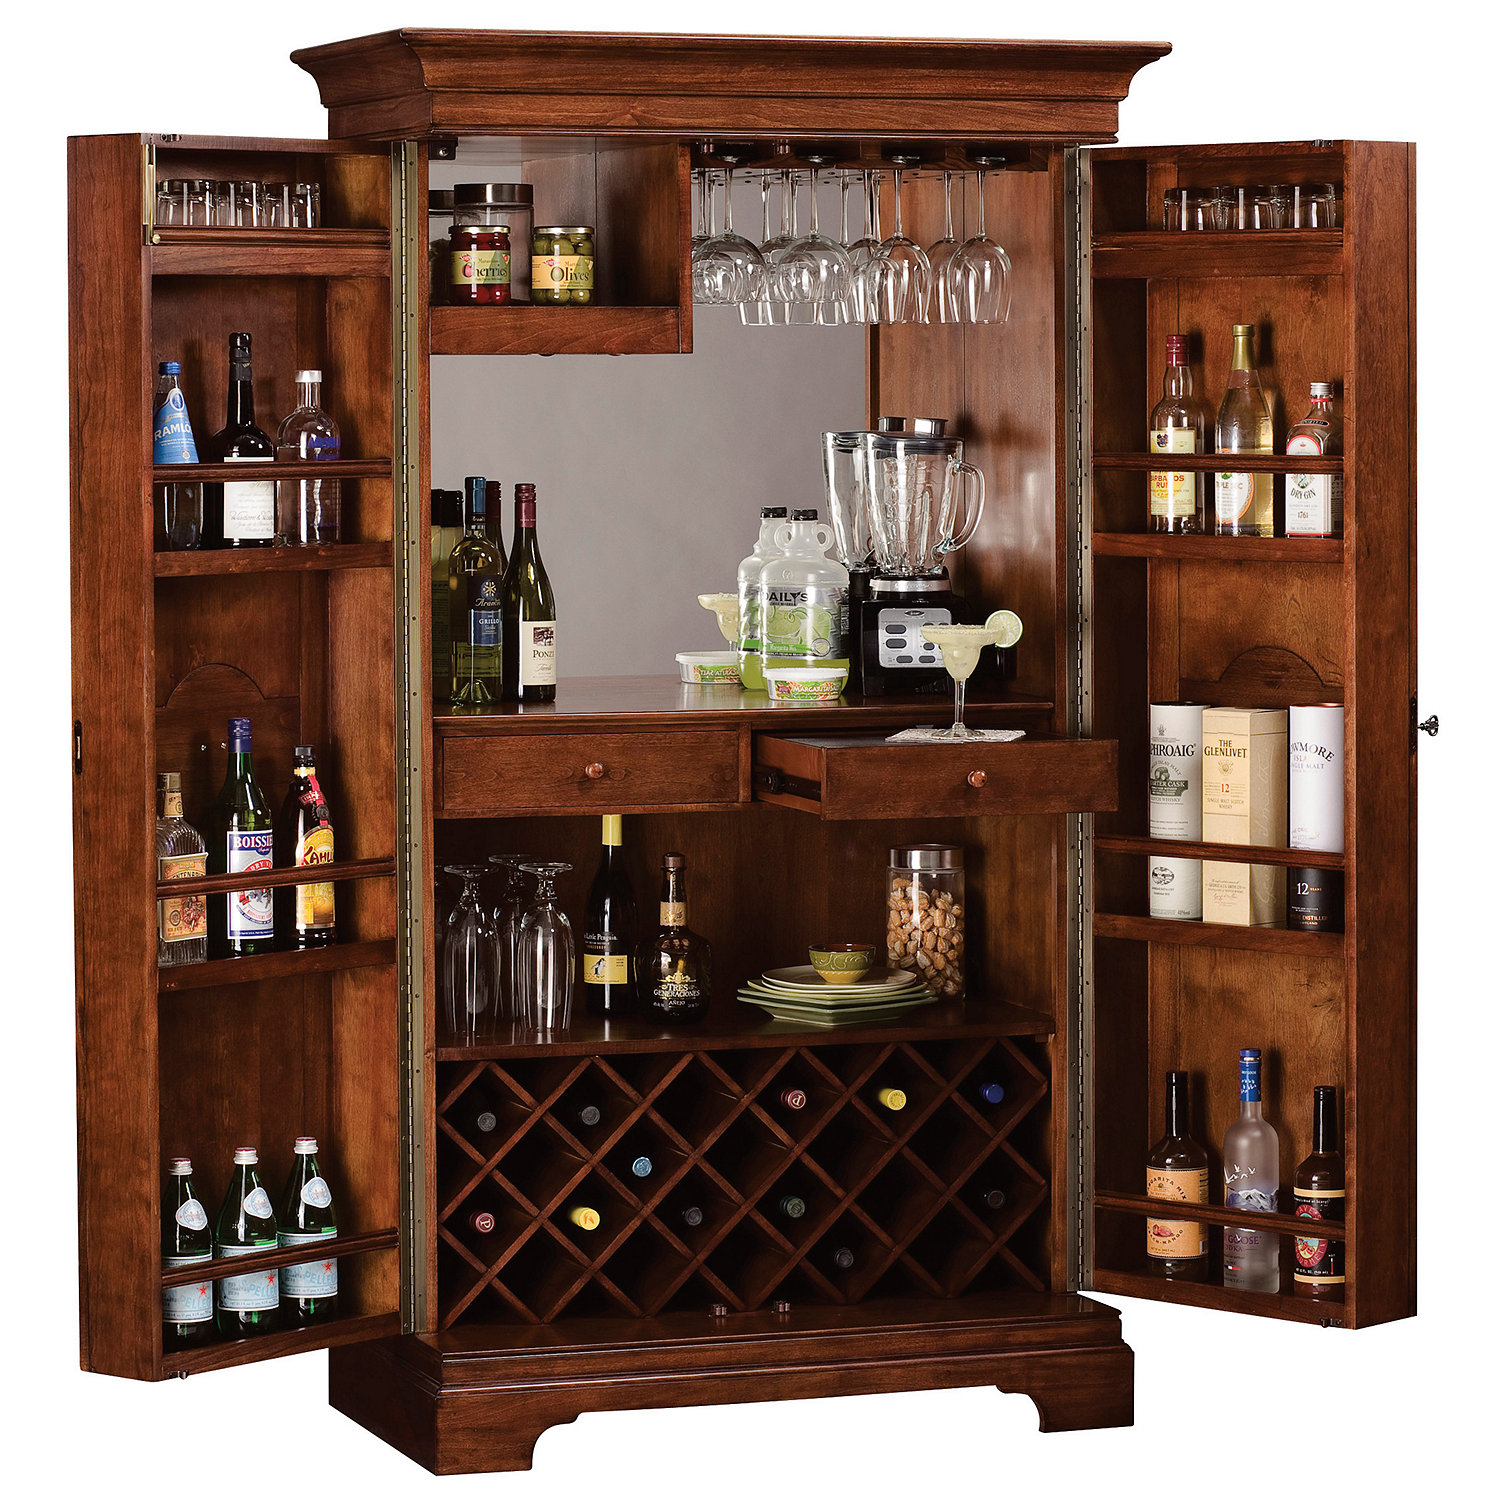 Howard Miller Barossa Valley Wine   Bar Cabinet. Home Bar Furniture   Full Service Home Bars   Wine Enthusiast